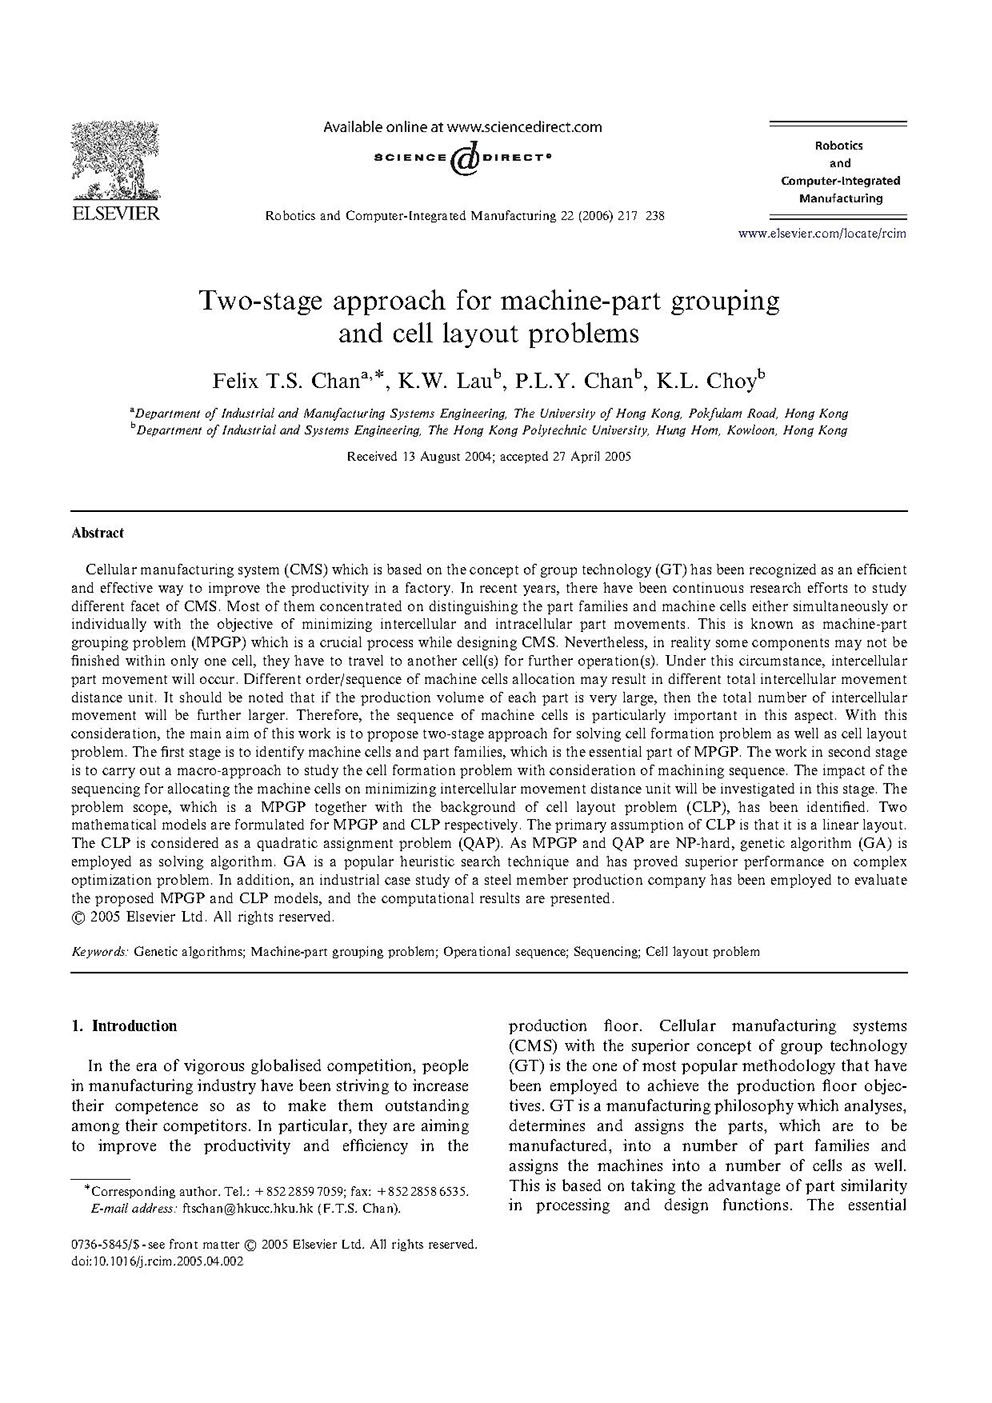 Two-stage approach for machine-part grouping and cell layout problems